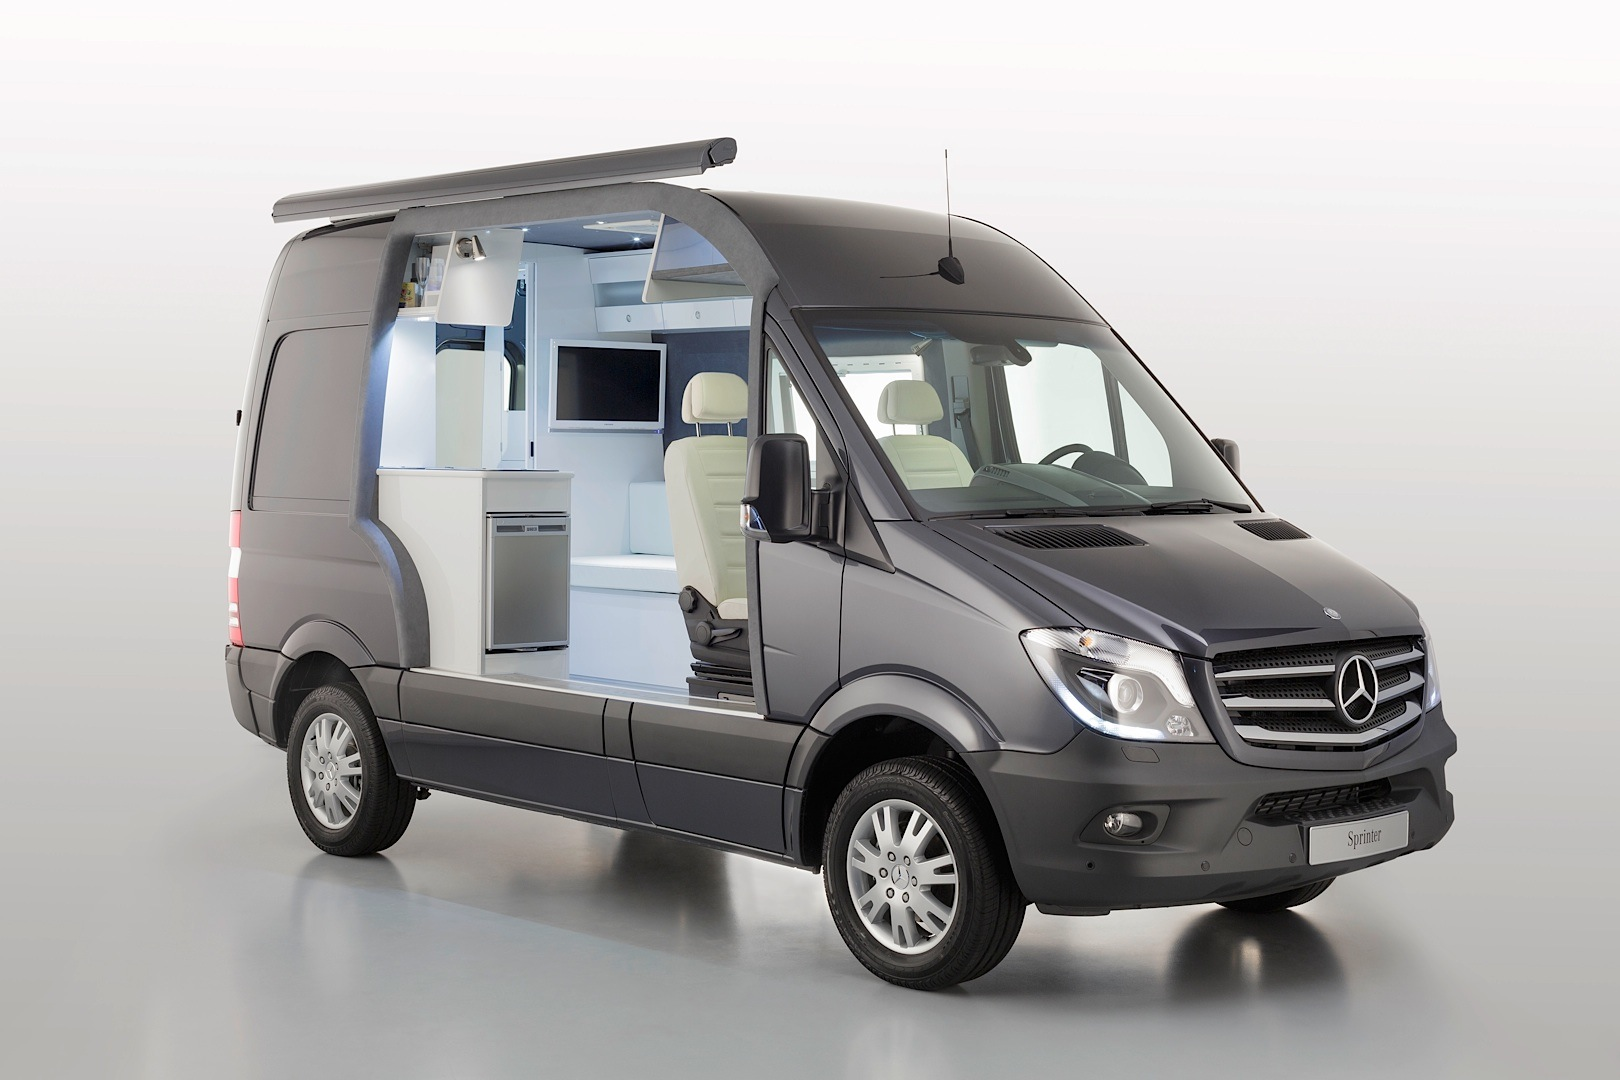 mercedes benz takes over the 2013 caravan salon ForMercedes Benz Recreational Vehicles